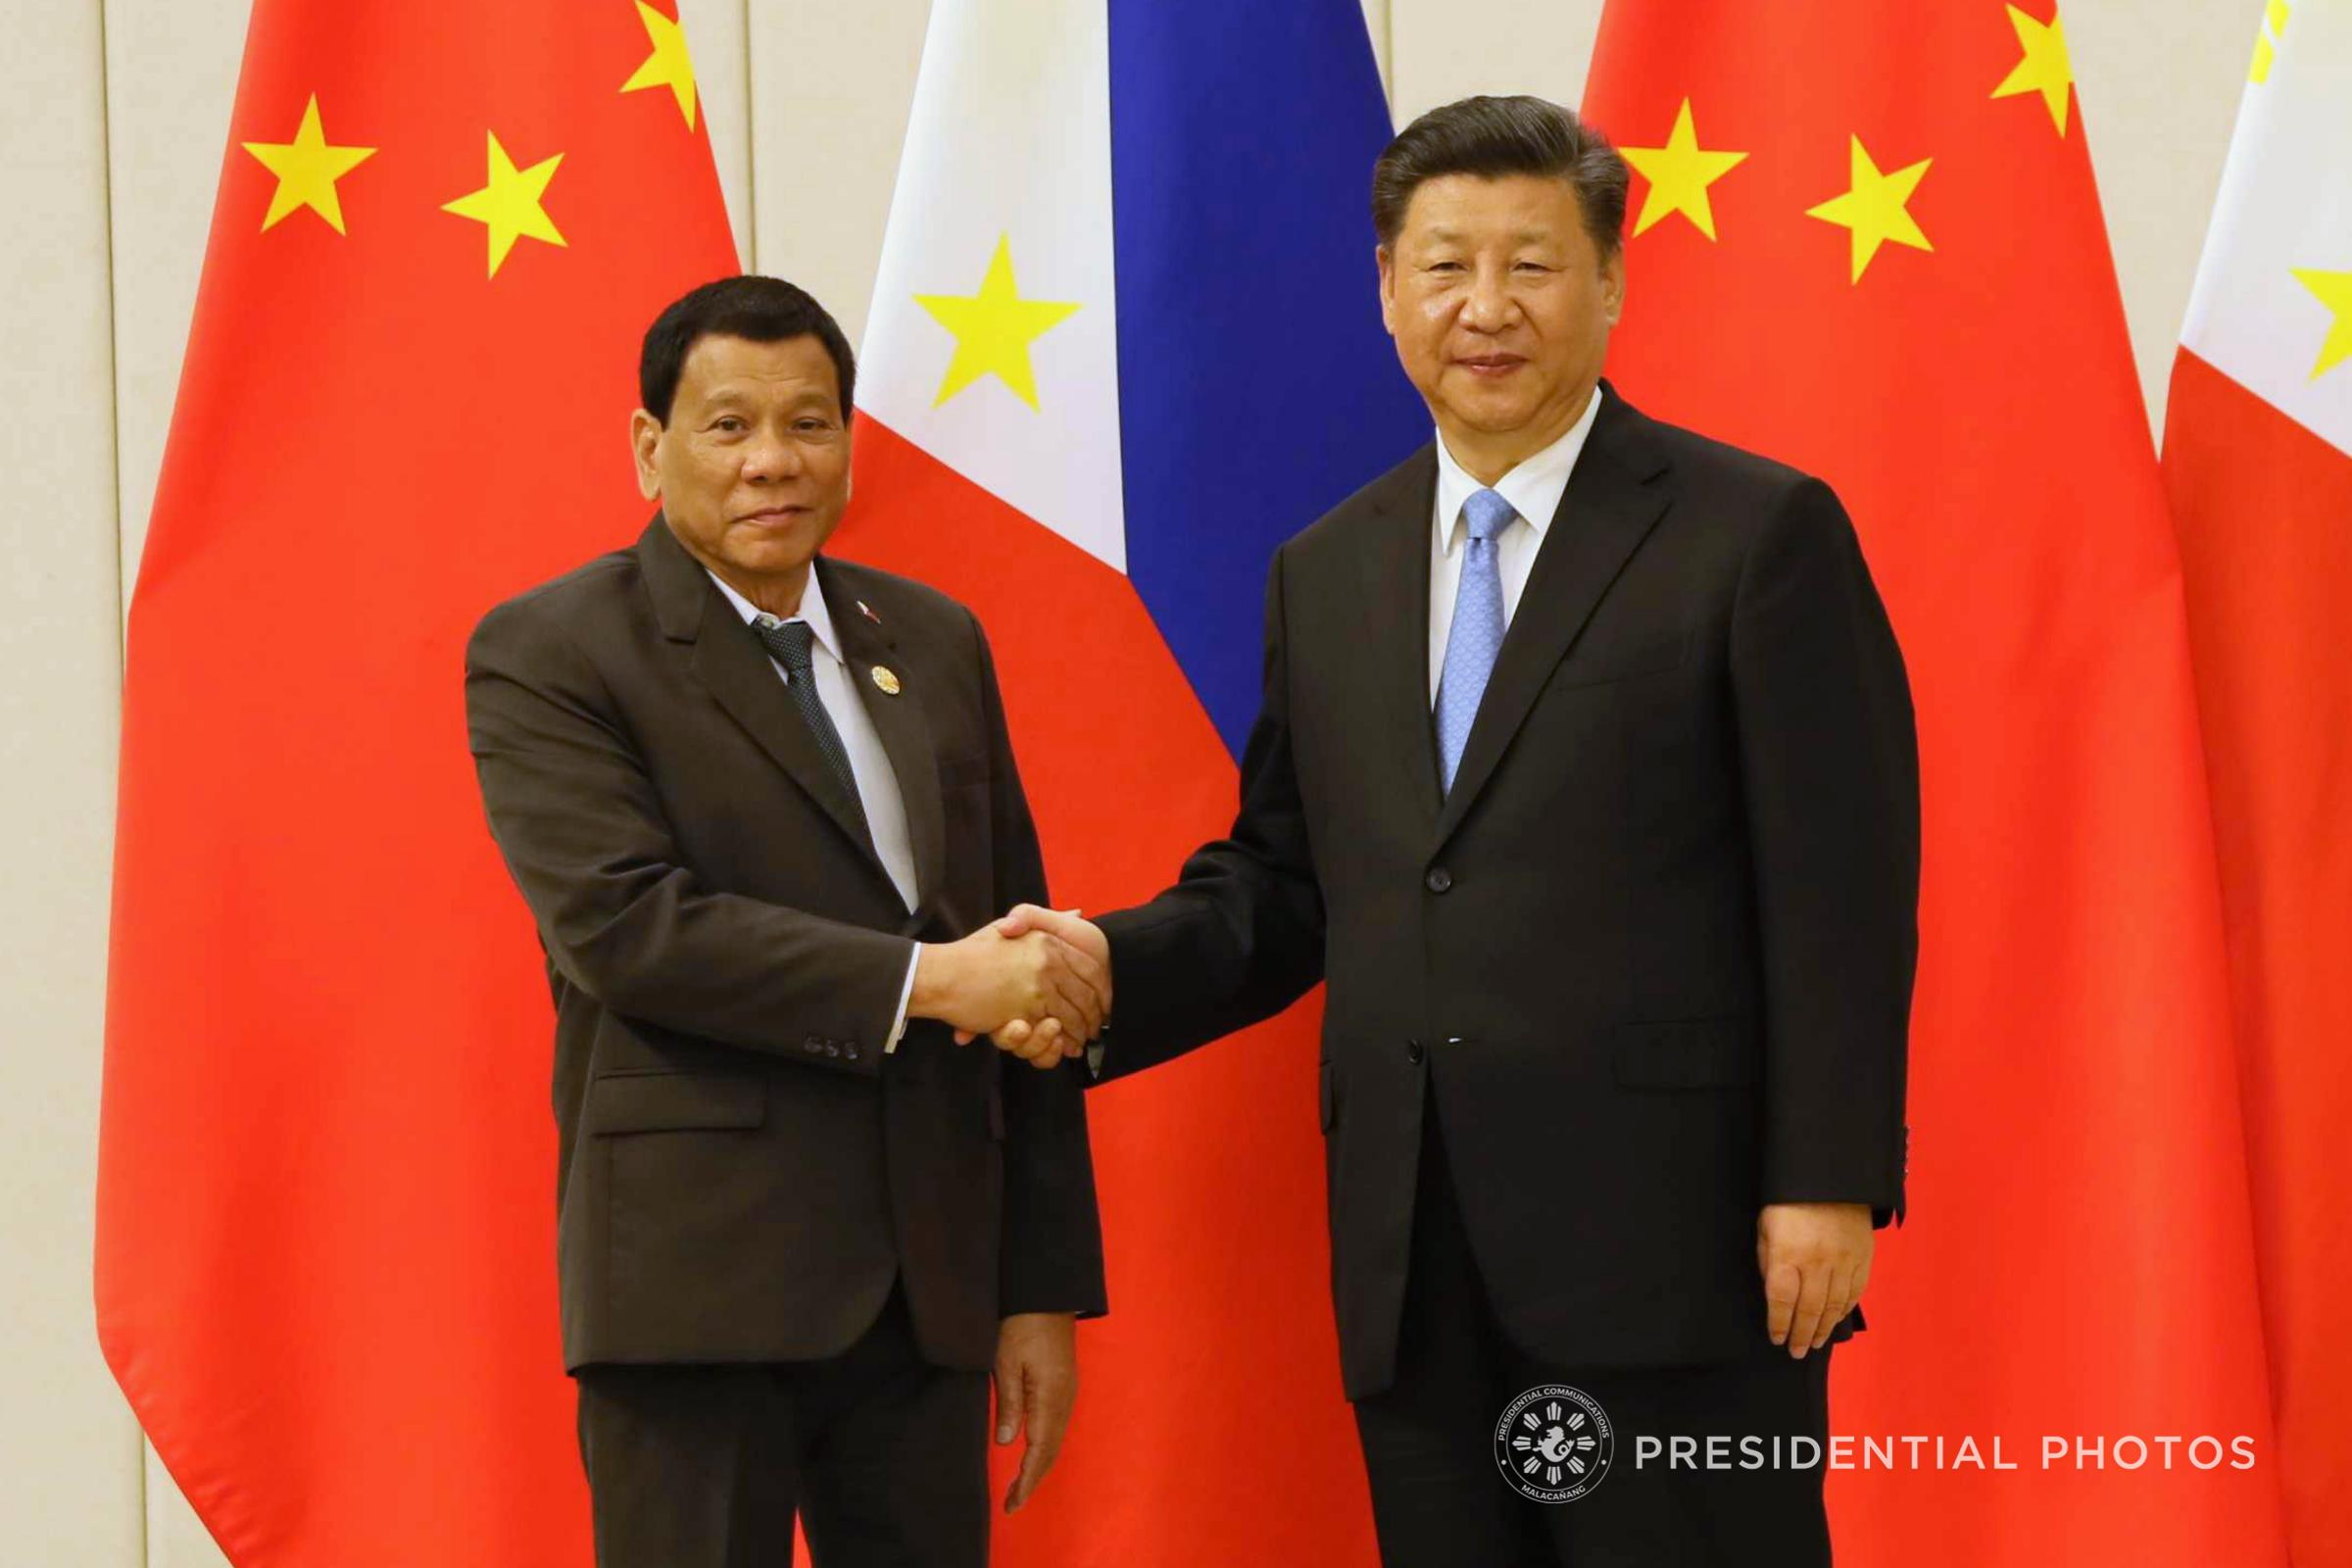 President Rodrigo Roa Duterte and People's Republic of China President Xi Jinping pose for